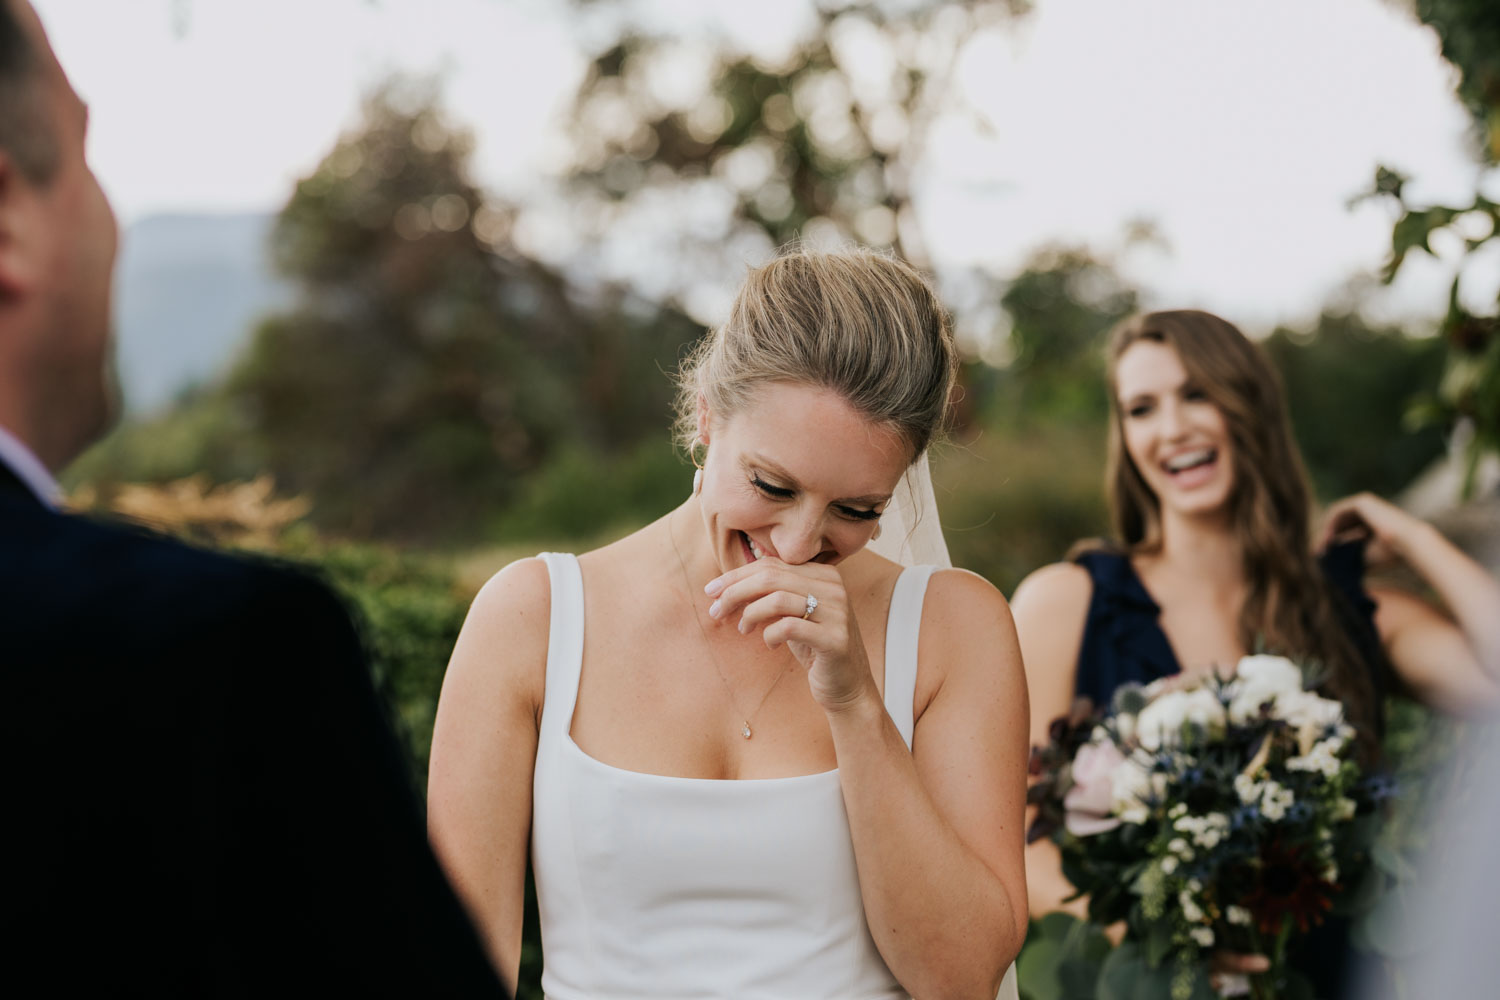 Elated bride laughs during wedding ceremony